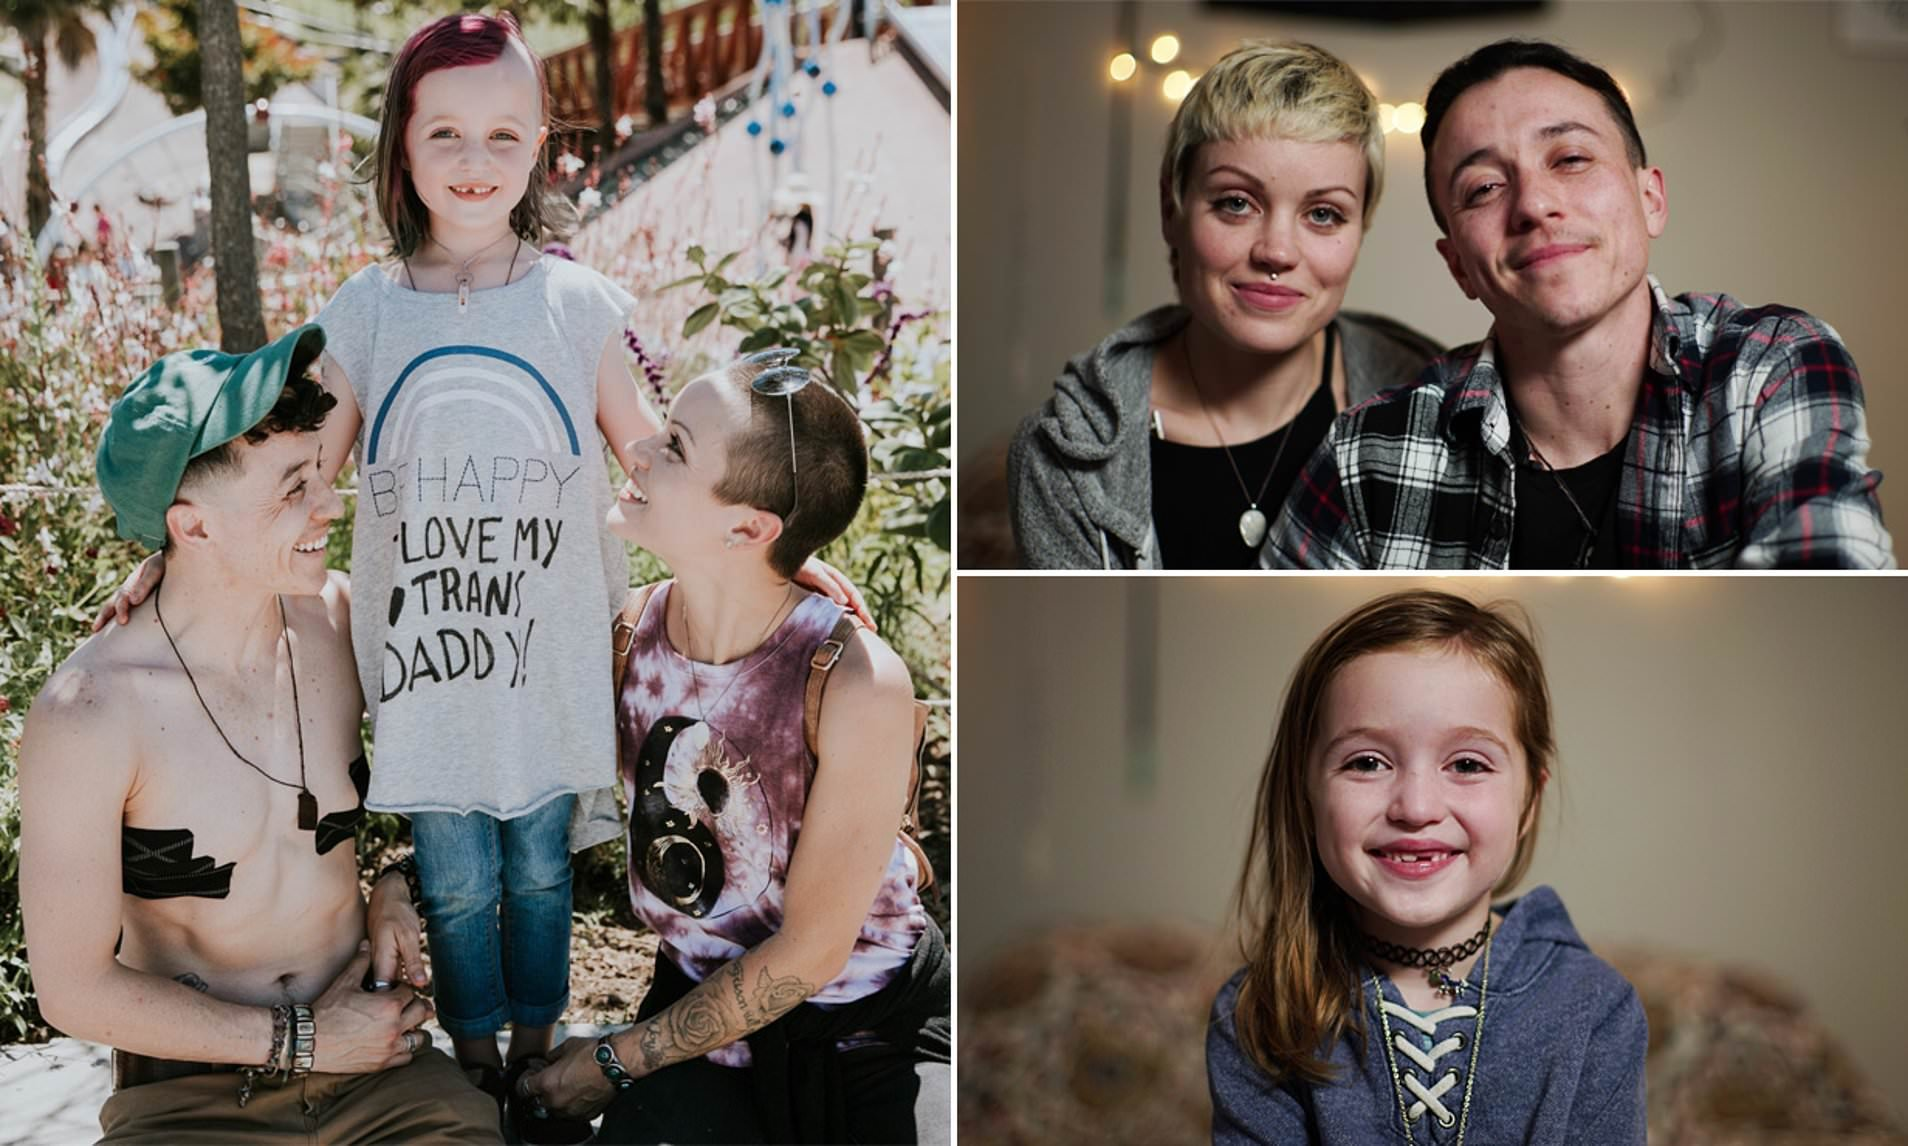 9417338 0 image a 14 1549372628408.jpeg?resize=1200,630 - Transgender And Non-Binary Couple Raising Their Child As Gender Fluid